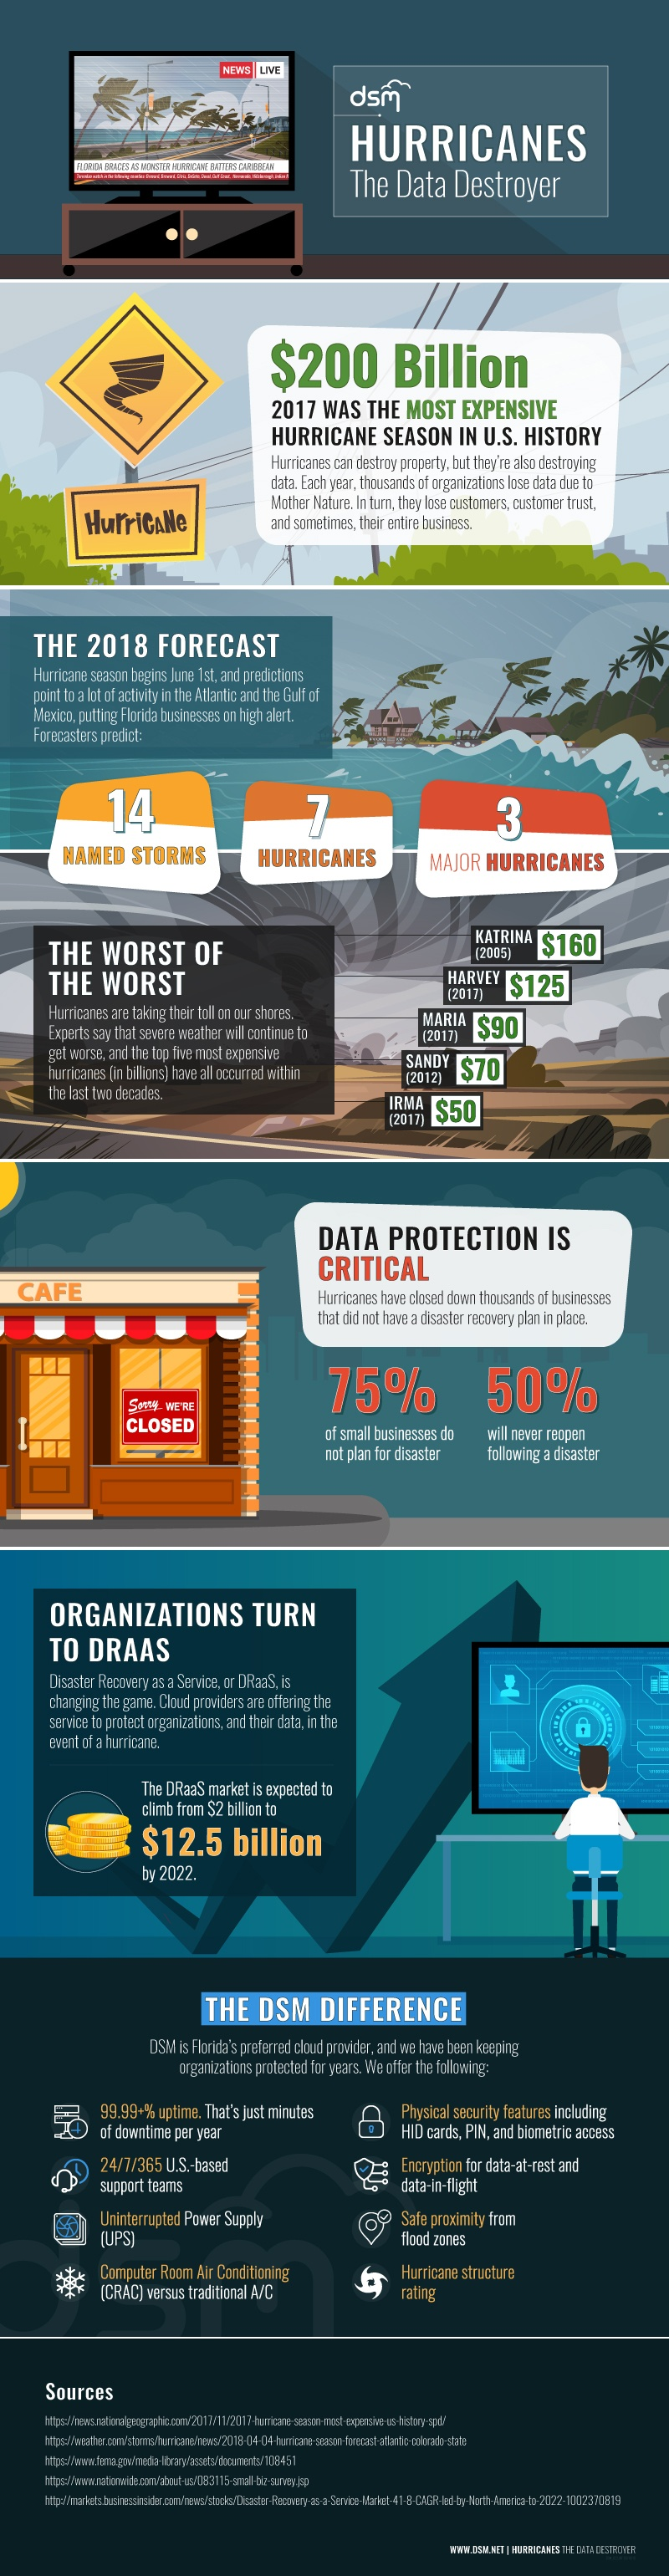 Hurricanes The Data Destroyer | DSM Infograhpic